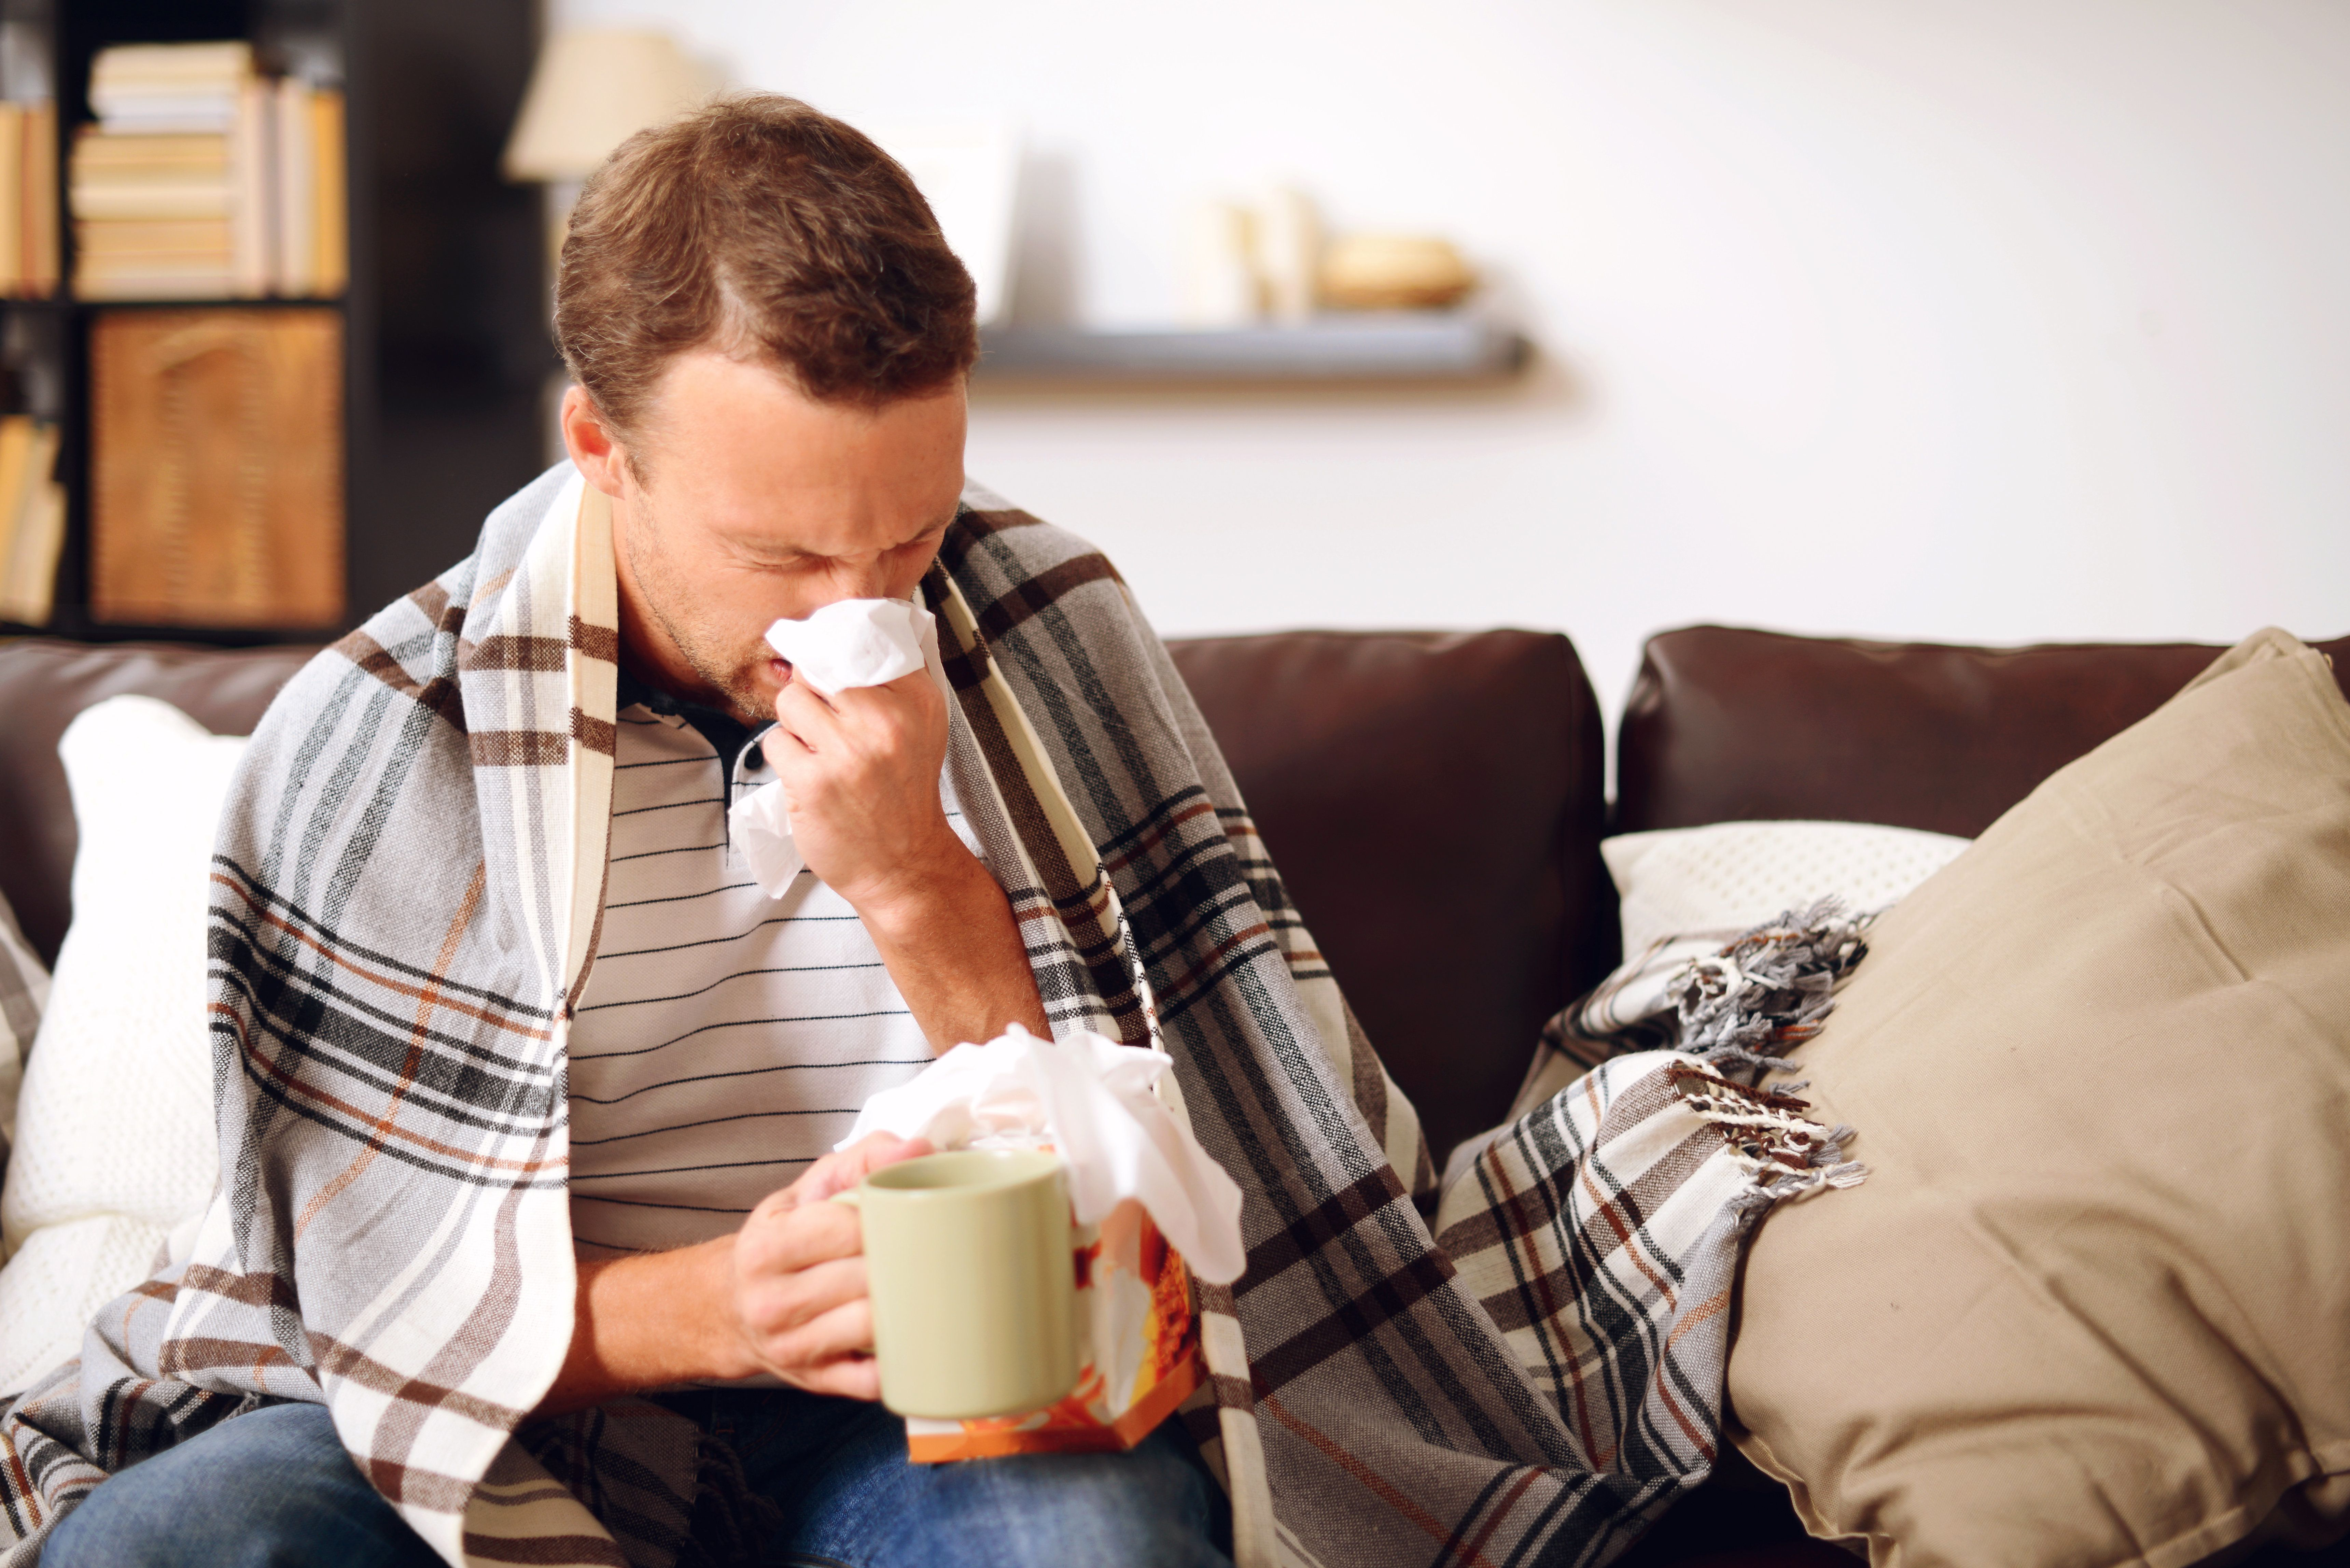 A new study suggests that not clocking enough sleepblocks specific processes in the DNA in your immune system that are responsible for fighting off infections,like the flu and the common cold, as well as chronic diseases.